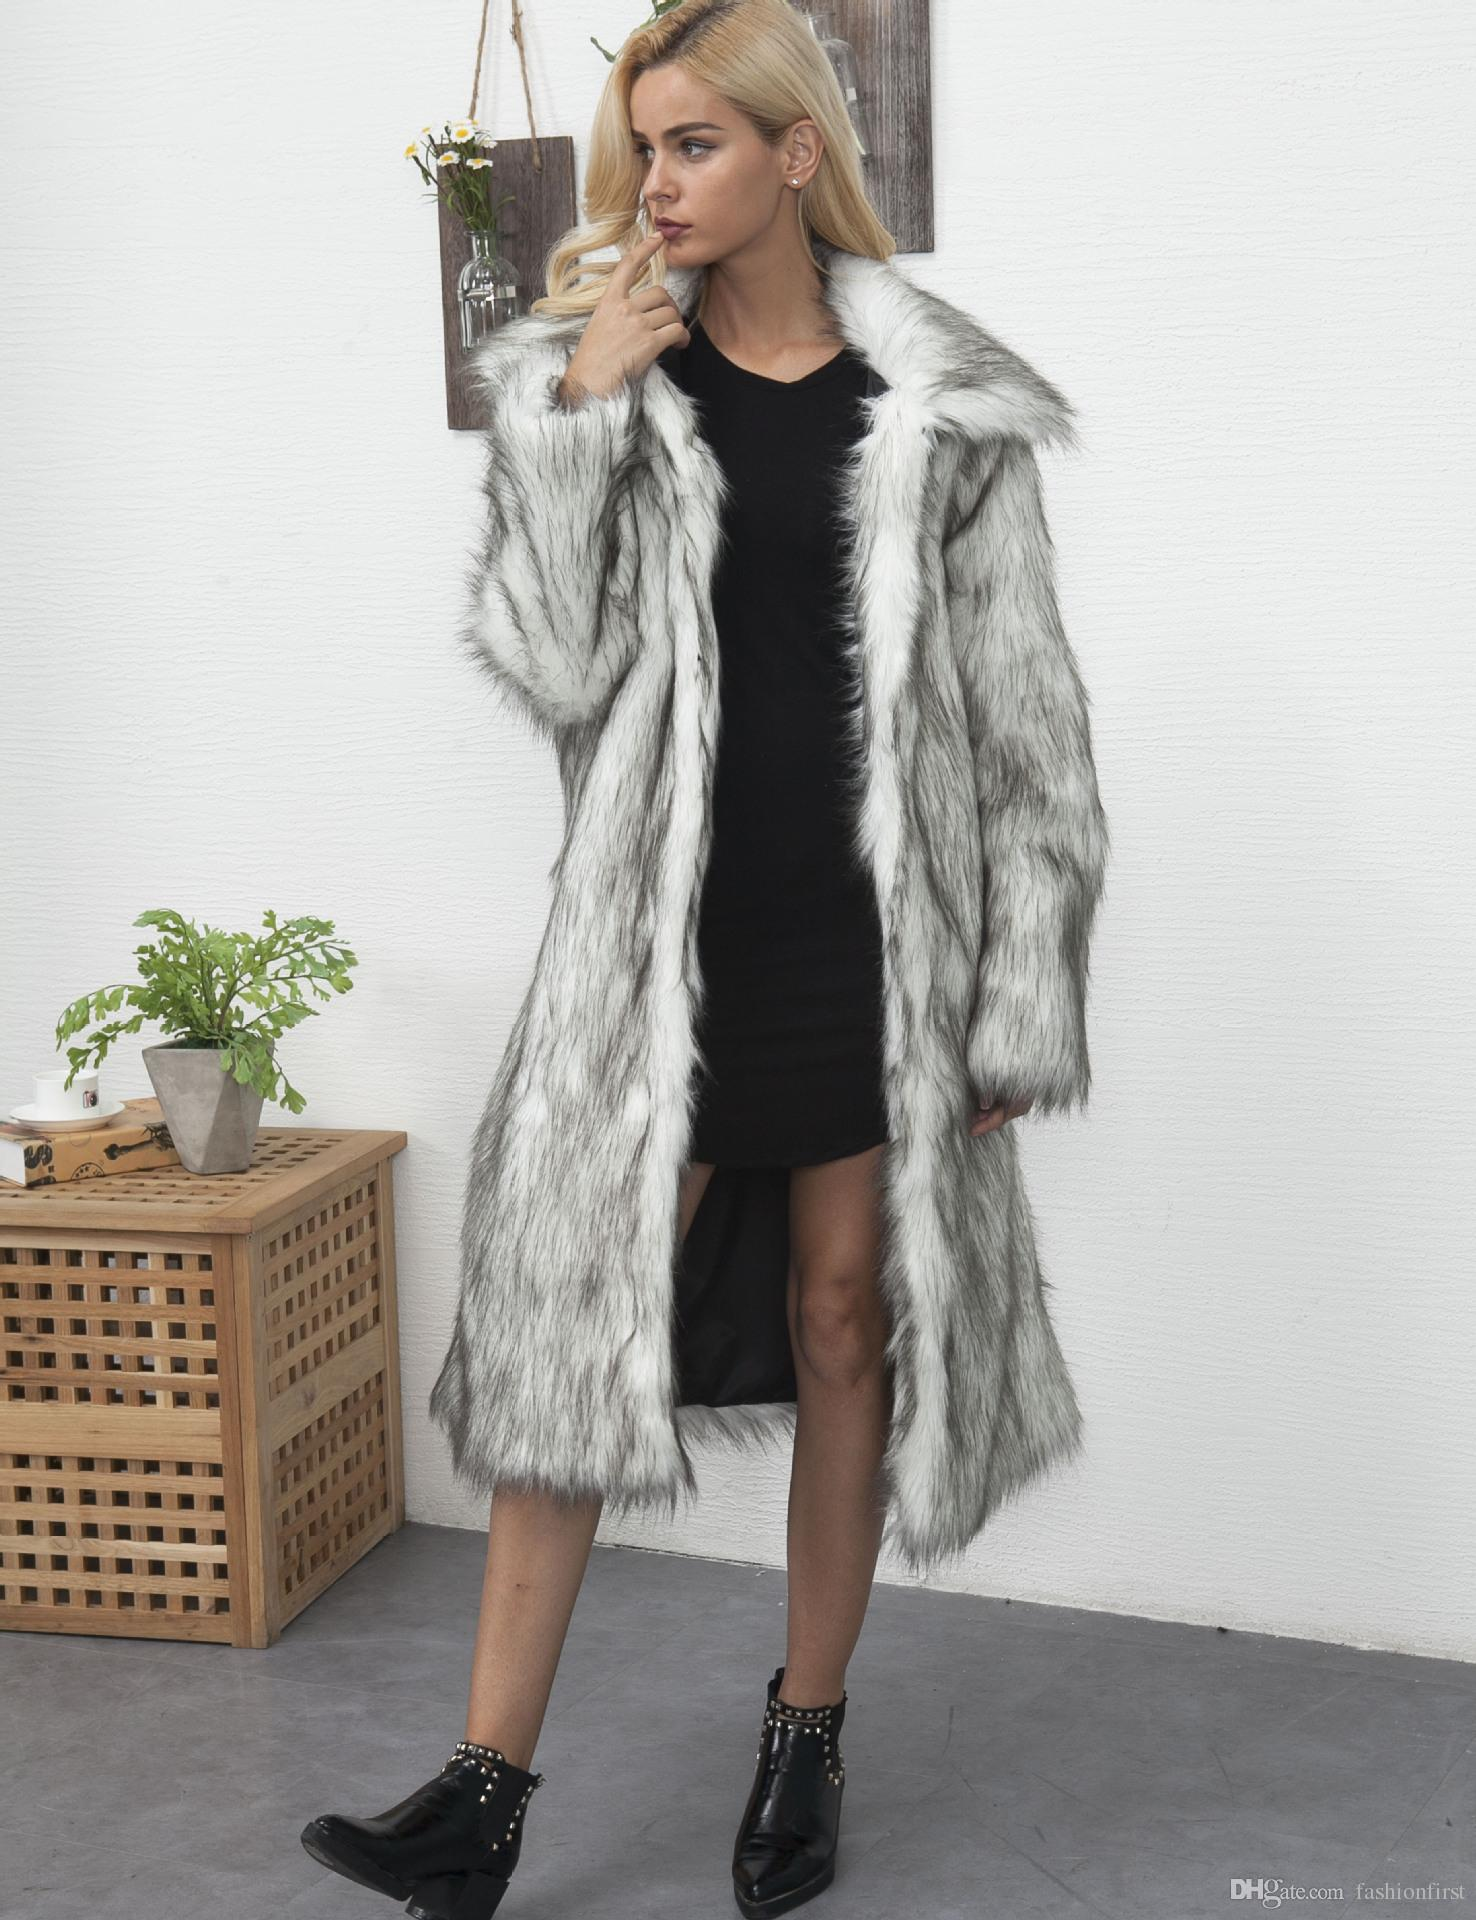 e49ca80006a 2019 Stylish Women Fur Coat Shop Fake Fur Jackets Warm Oversized Fashion  Faux Fur Coats Fashion Womens Coat From Fashionfirst